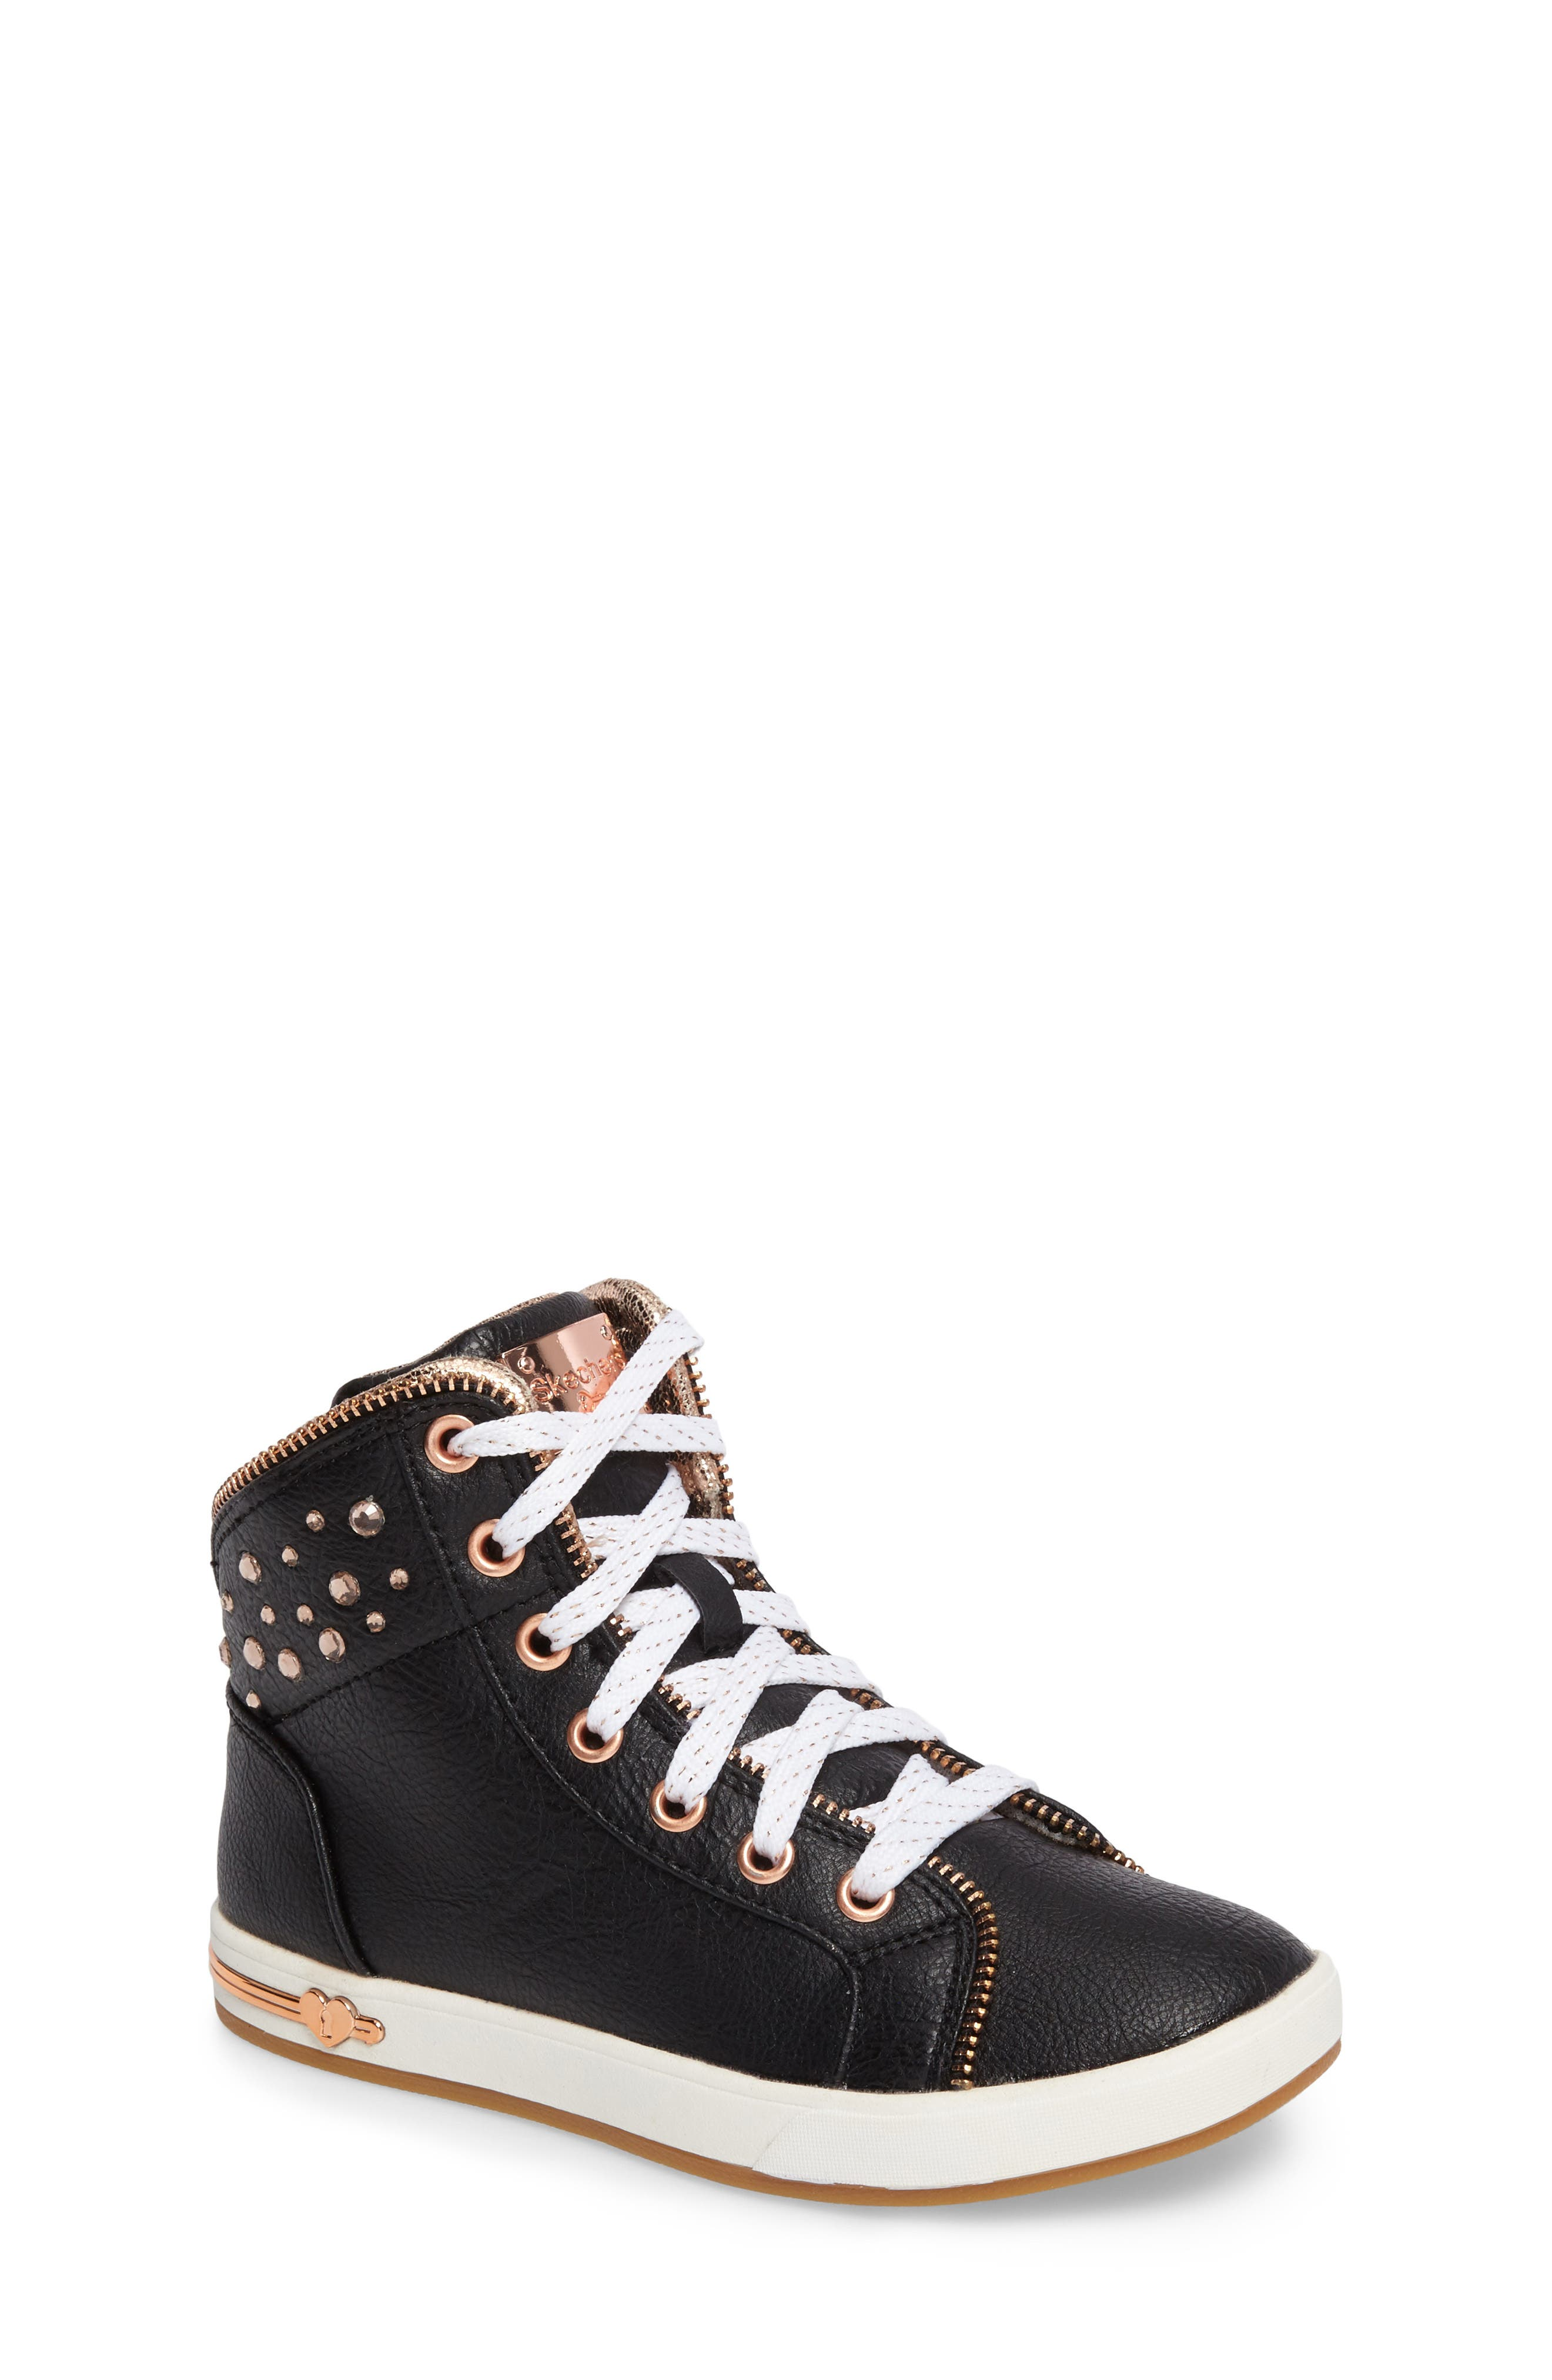 SKECHERS Shoutouts Embellished High Top Sneaker